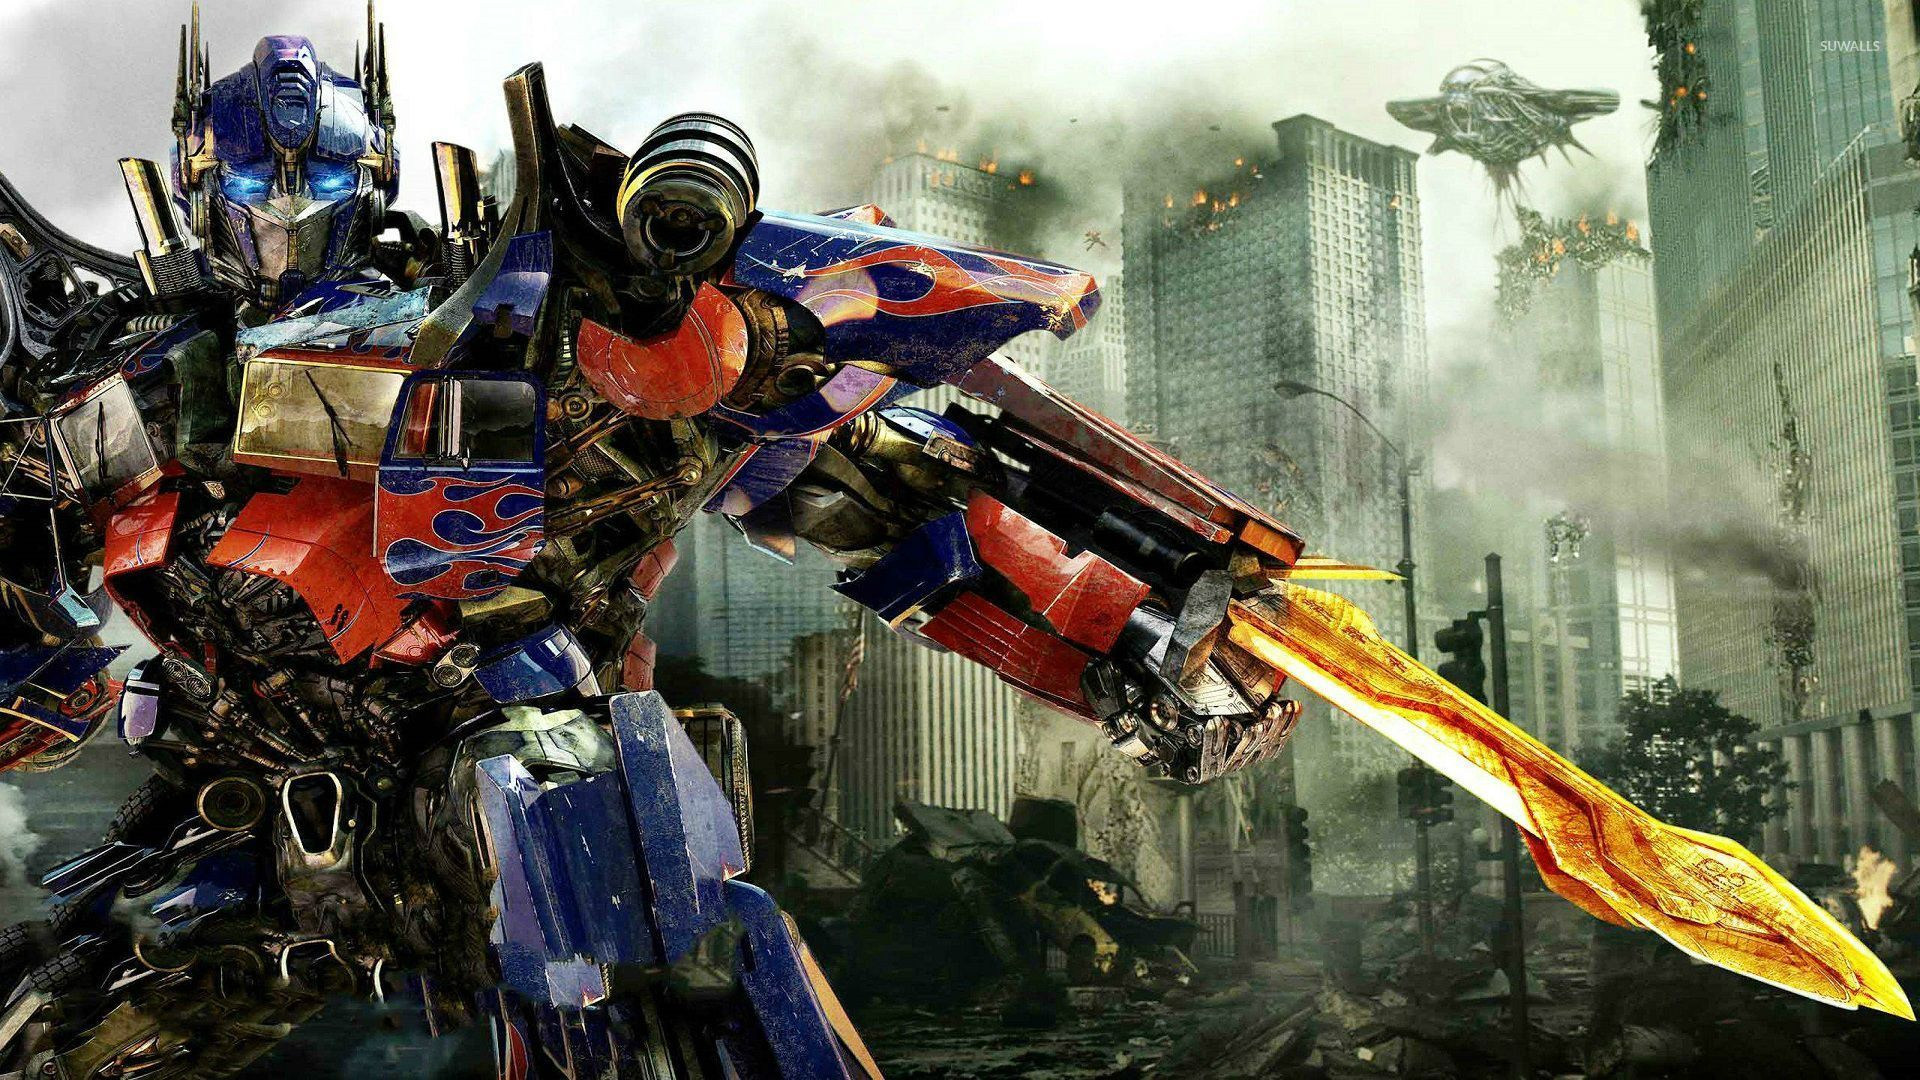 optimus prime - transformers [3] wallpaper - movie wallpapers - #29009